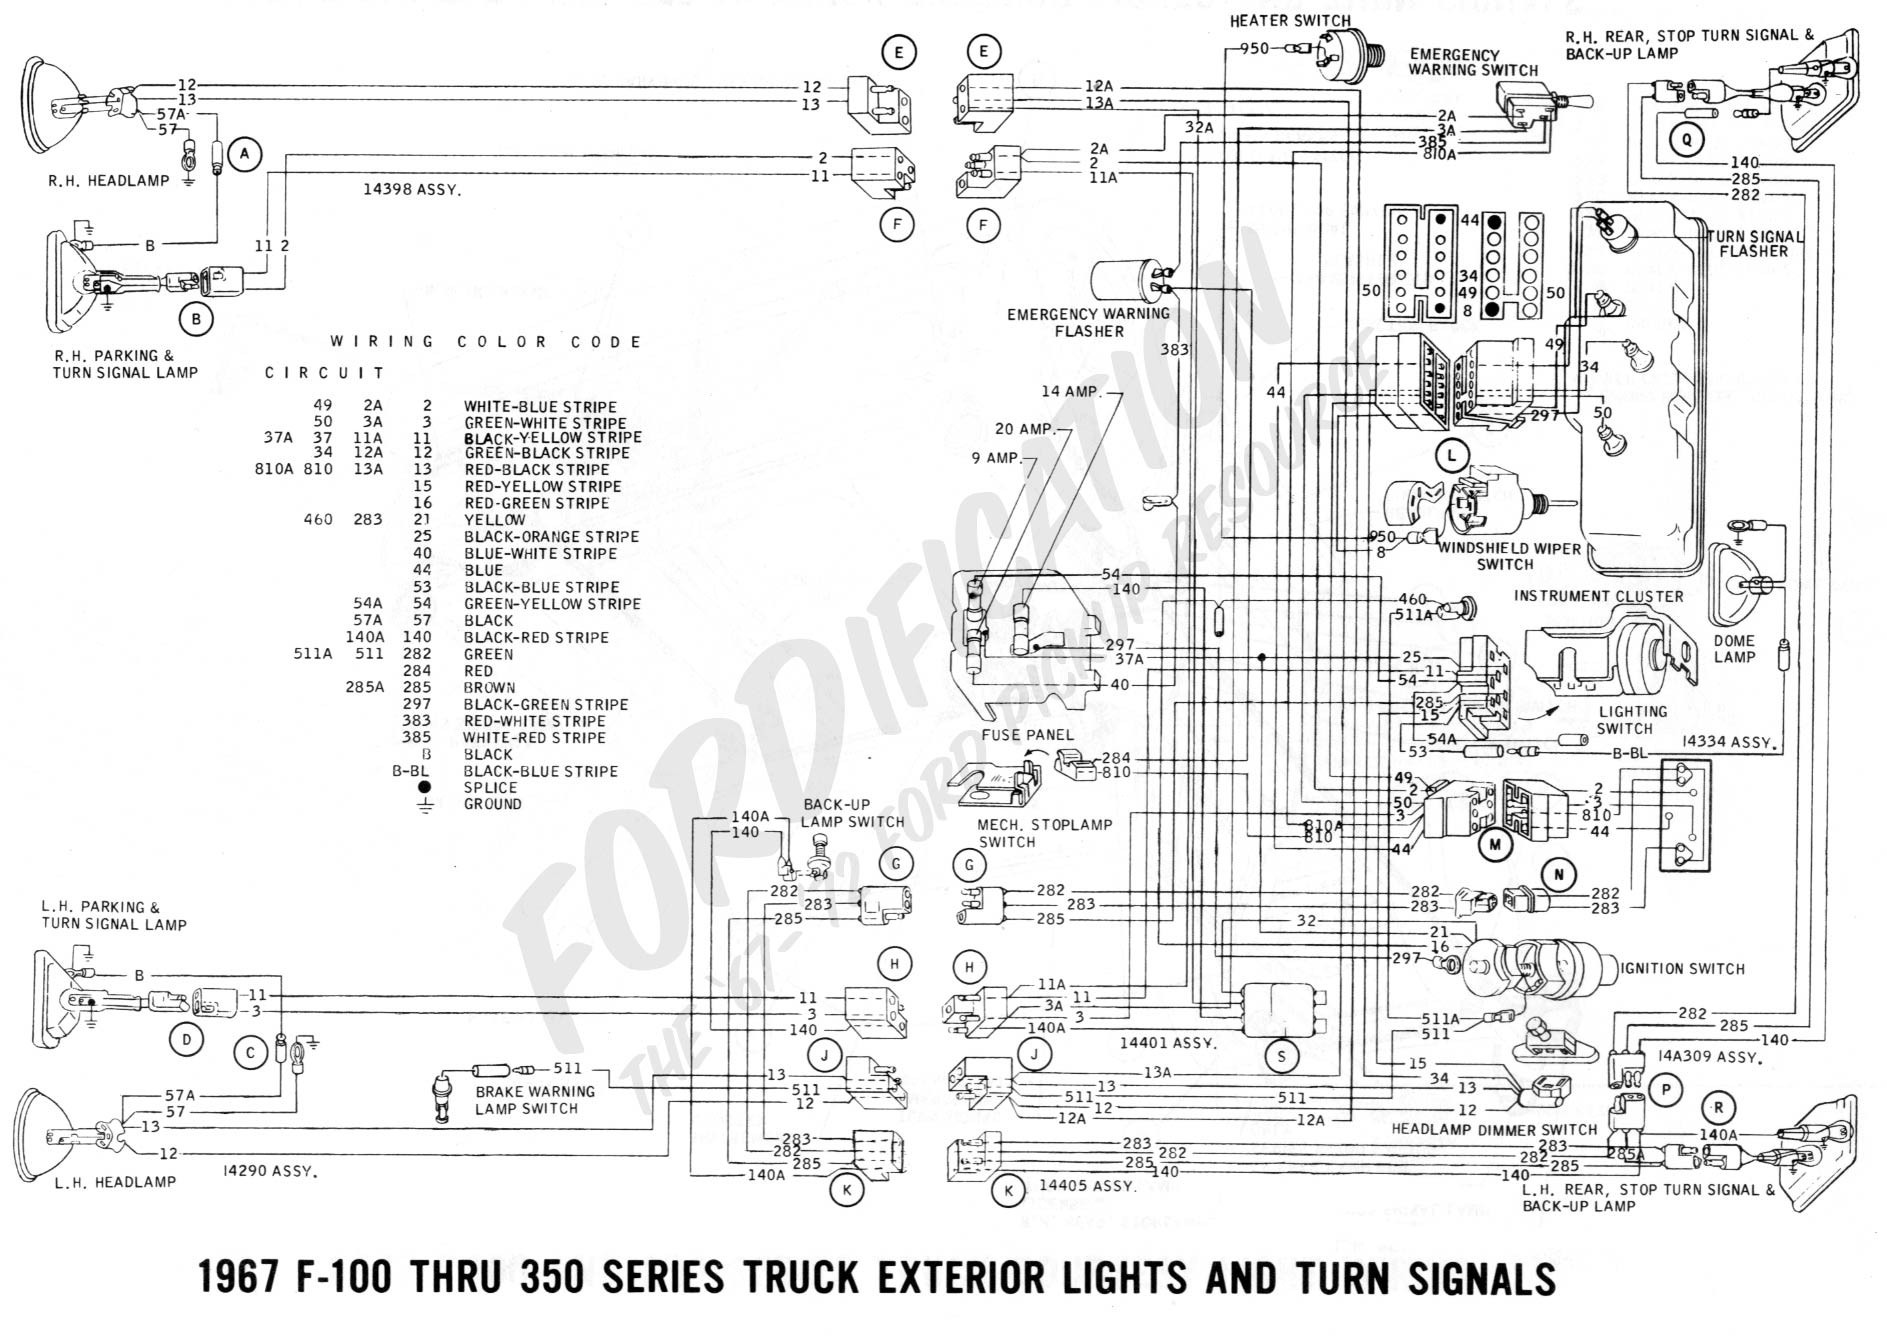 Turn Signal Wiring Diagram Motorcycle Turn Signal Wiring Diagram ford Truck Technical Drawings and Of Turn Signal Wiring Diagram Motorcycle